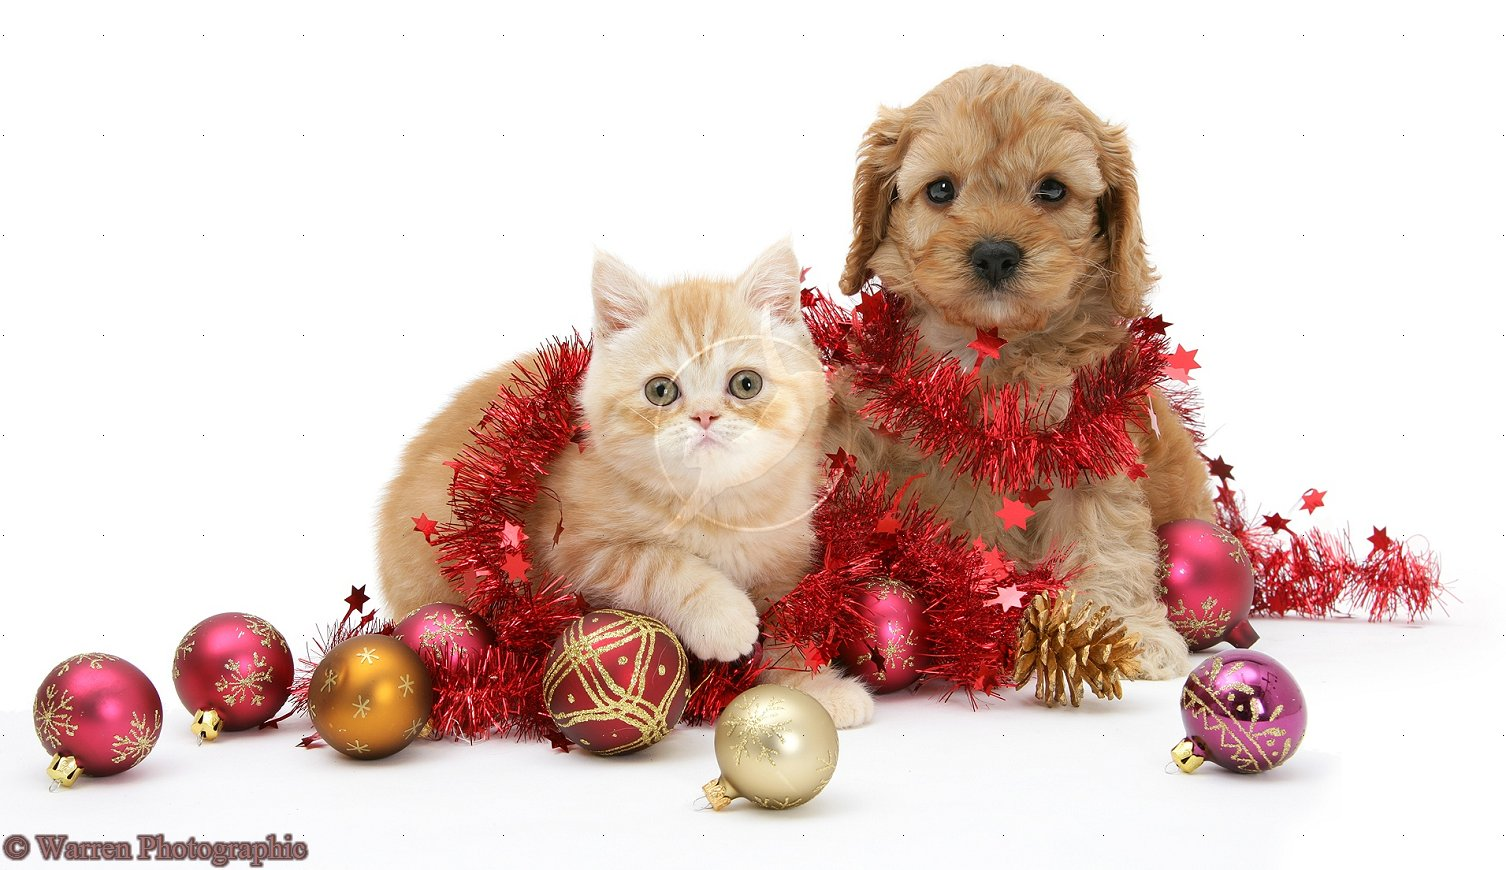 Cute Christmas Kittens And Puppies 9683 Hd Wallpapers in Celebrations 1506x870